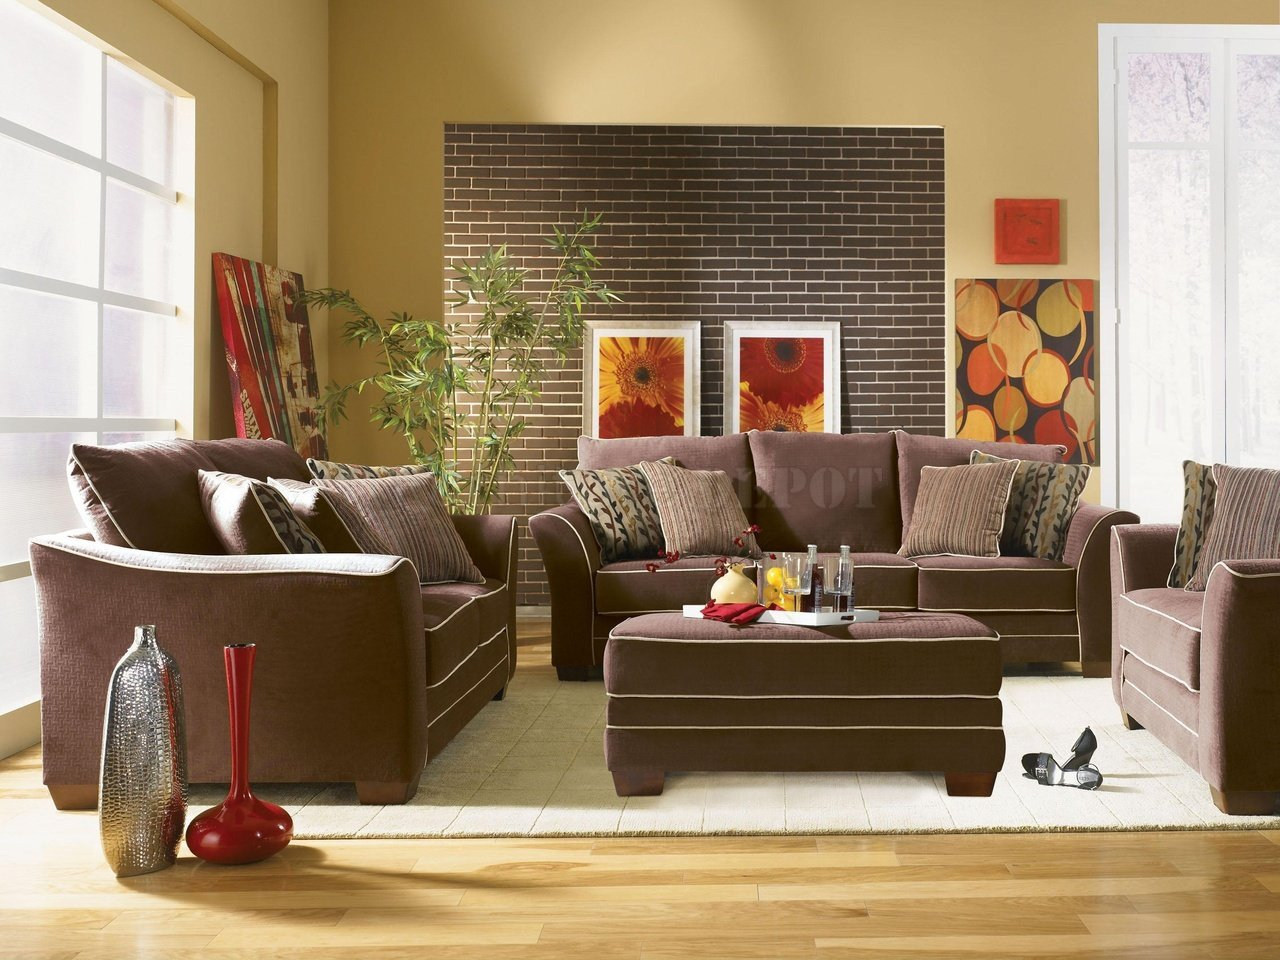 Living Room Furniture Ideas Interior Design Ideas Interior Designs Home Design Ideas